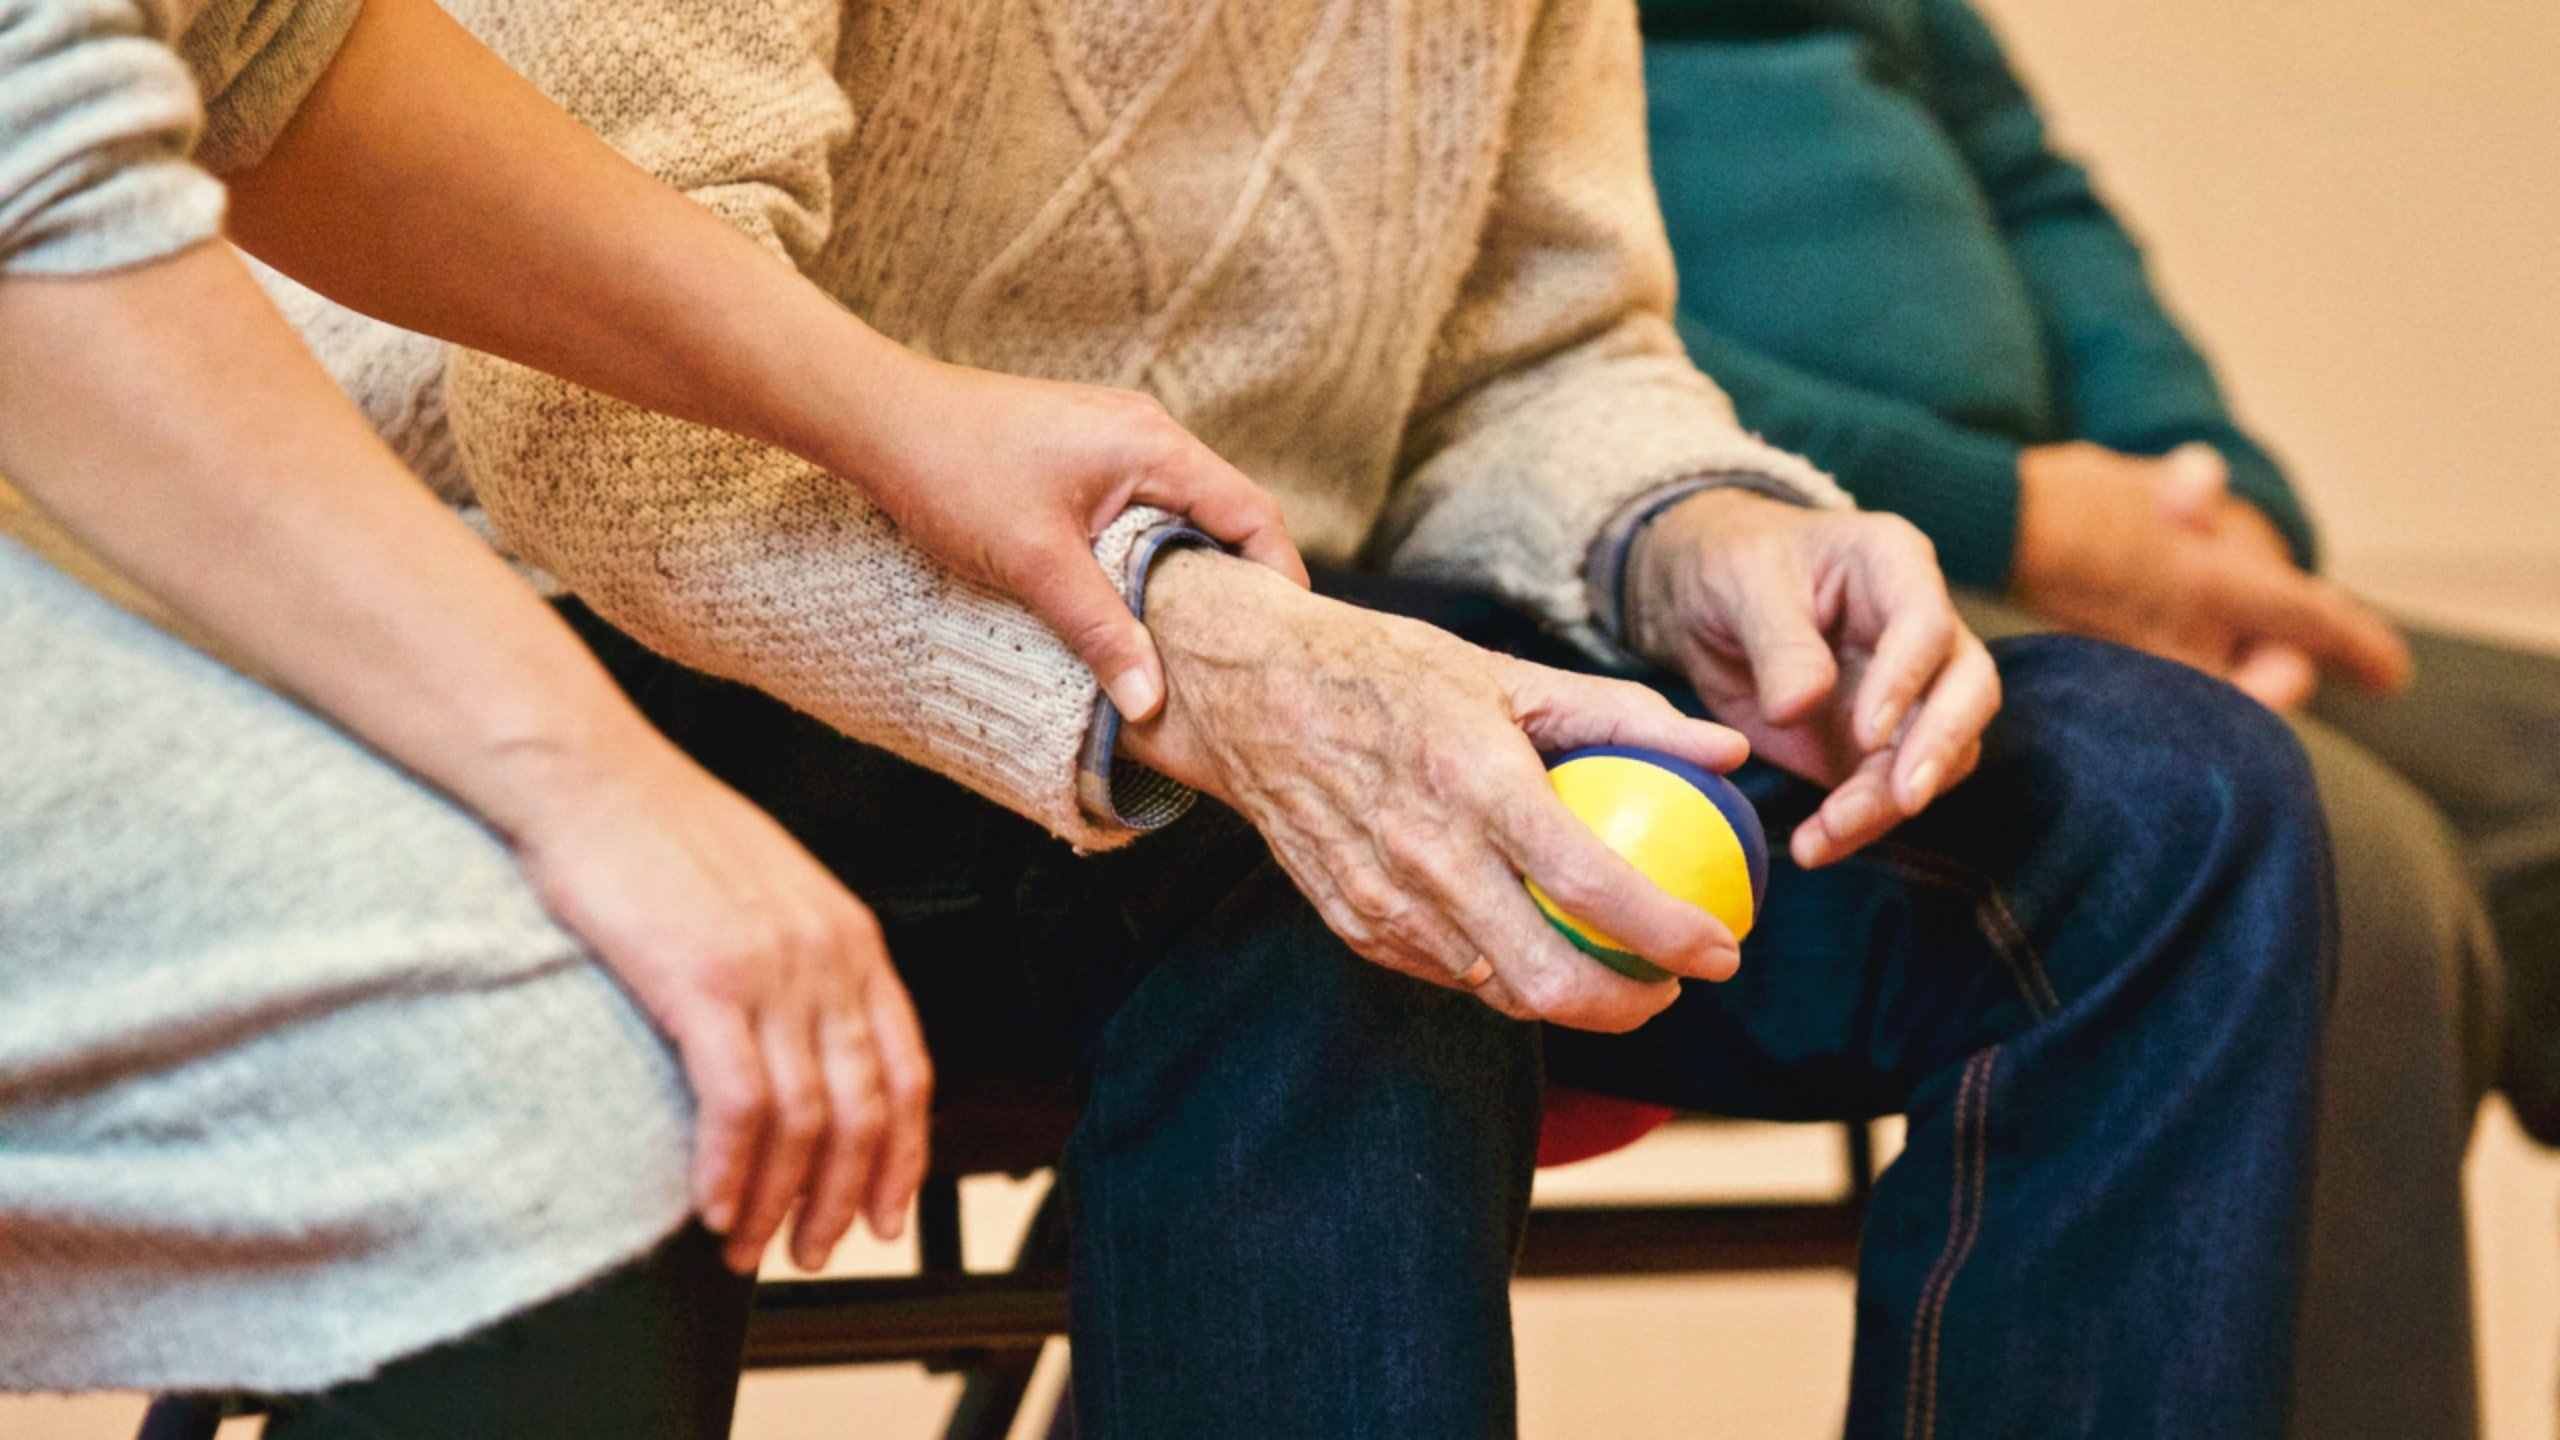 A woman wearing a gray outfit holding the arm of an elderly man who holds a stress ball in his hand   Source: Pexels